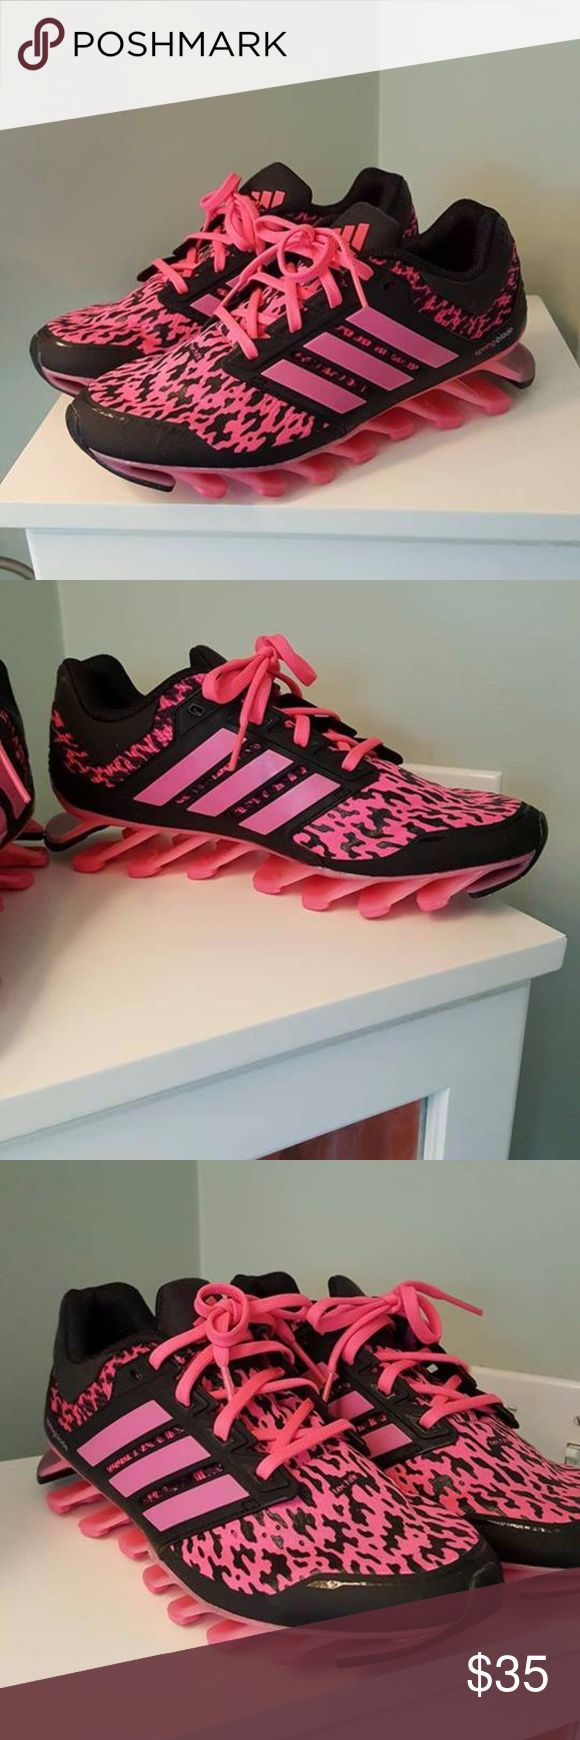 Adidas SpringBlade Sneakers Size 7.5 Pink and black Adidas sneakers. Add a little pep to your step/workout with these comfy stylish sneakers. Size 7.5, worn twice. adidas Shoes Athletic Shoes